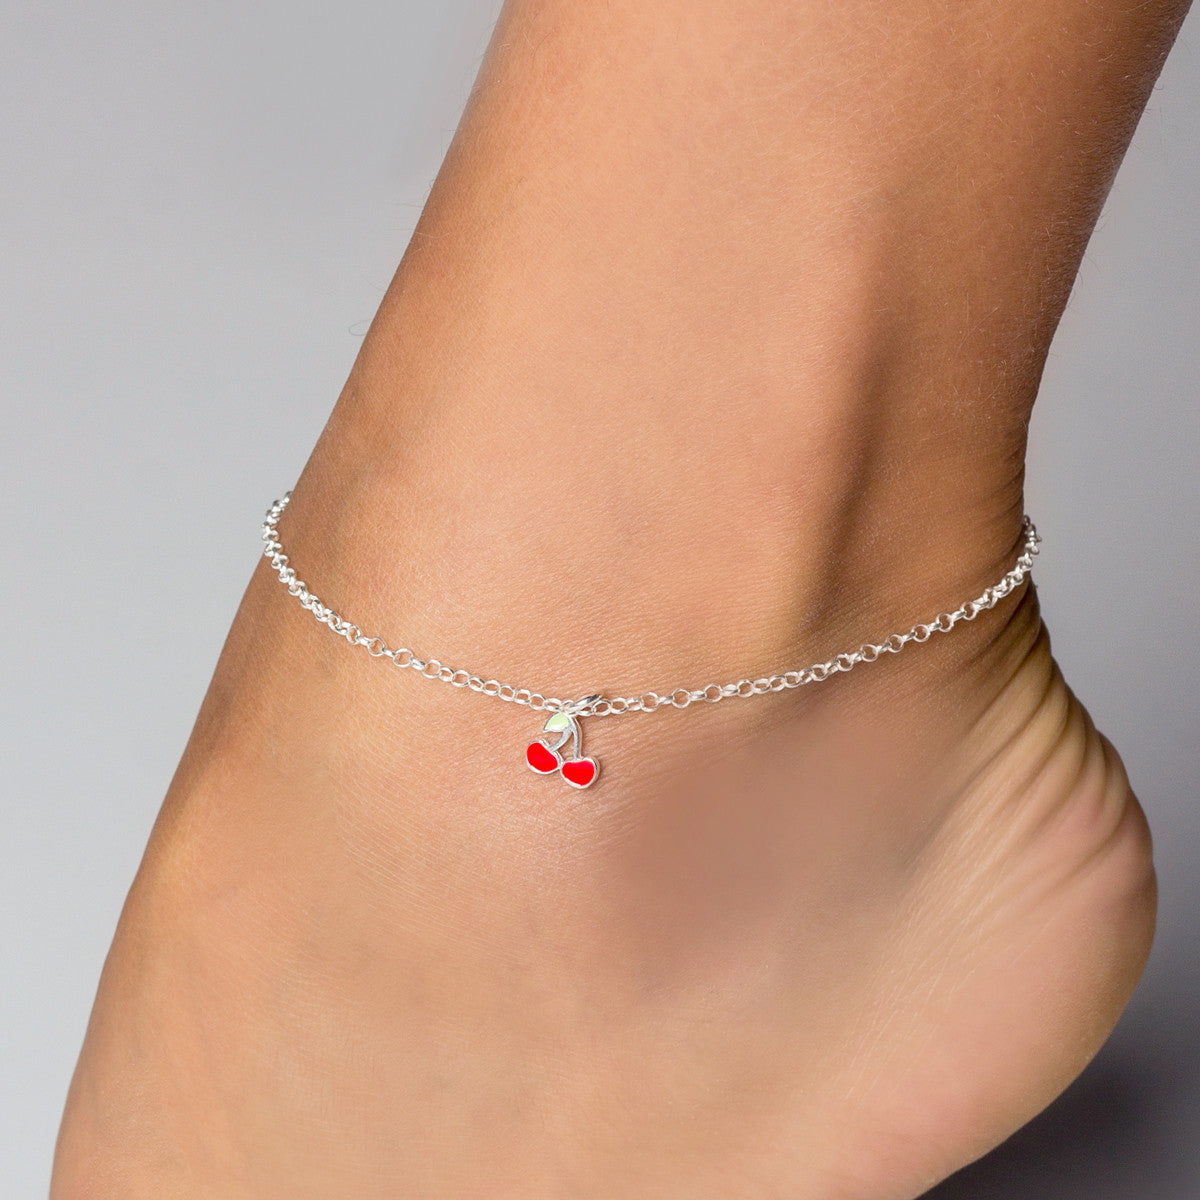 heart inch charm chain beautiful bracelet gold anklets jewelry bling figaro anklet filled